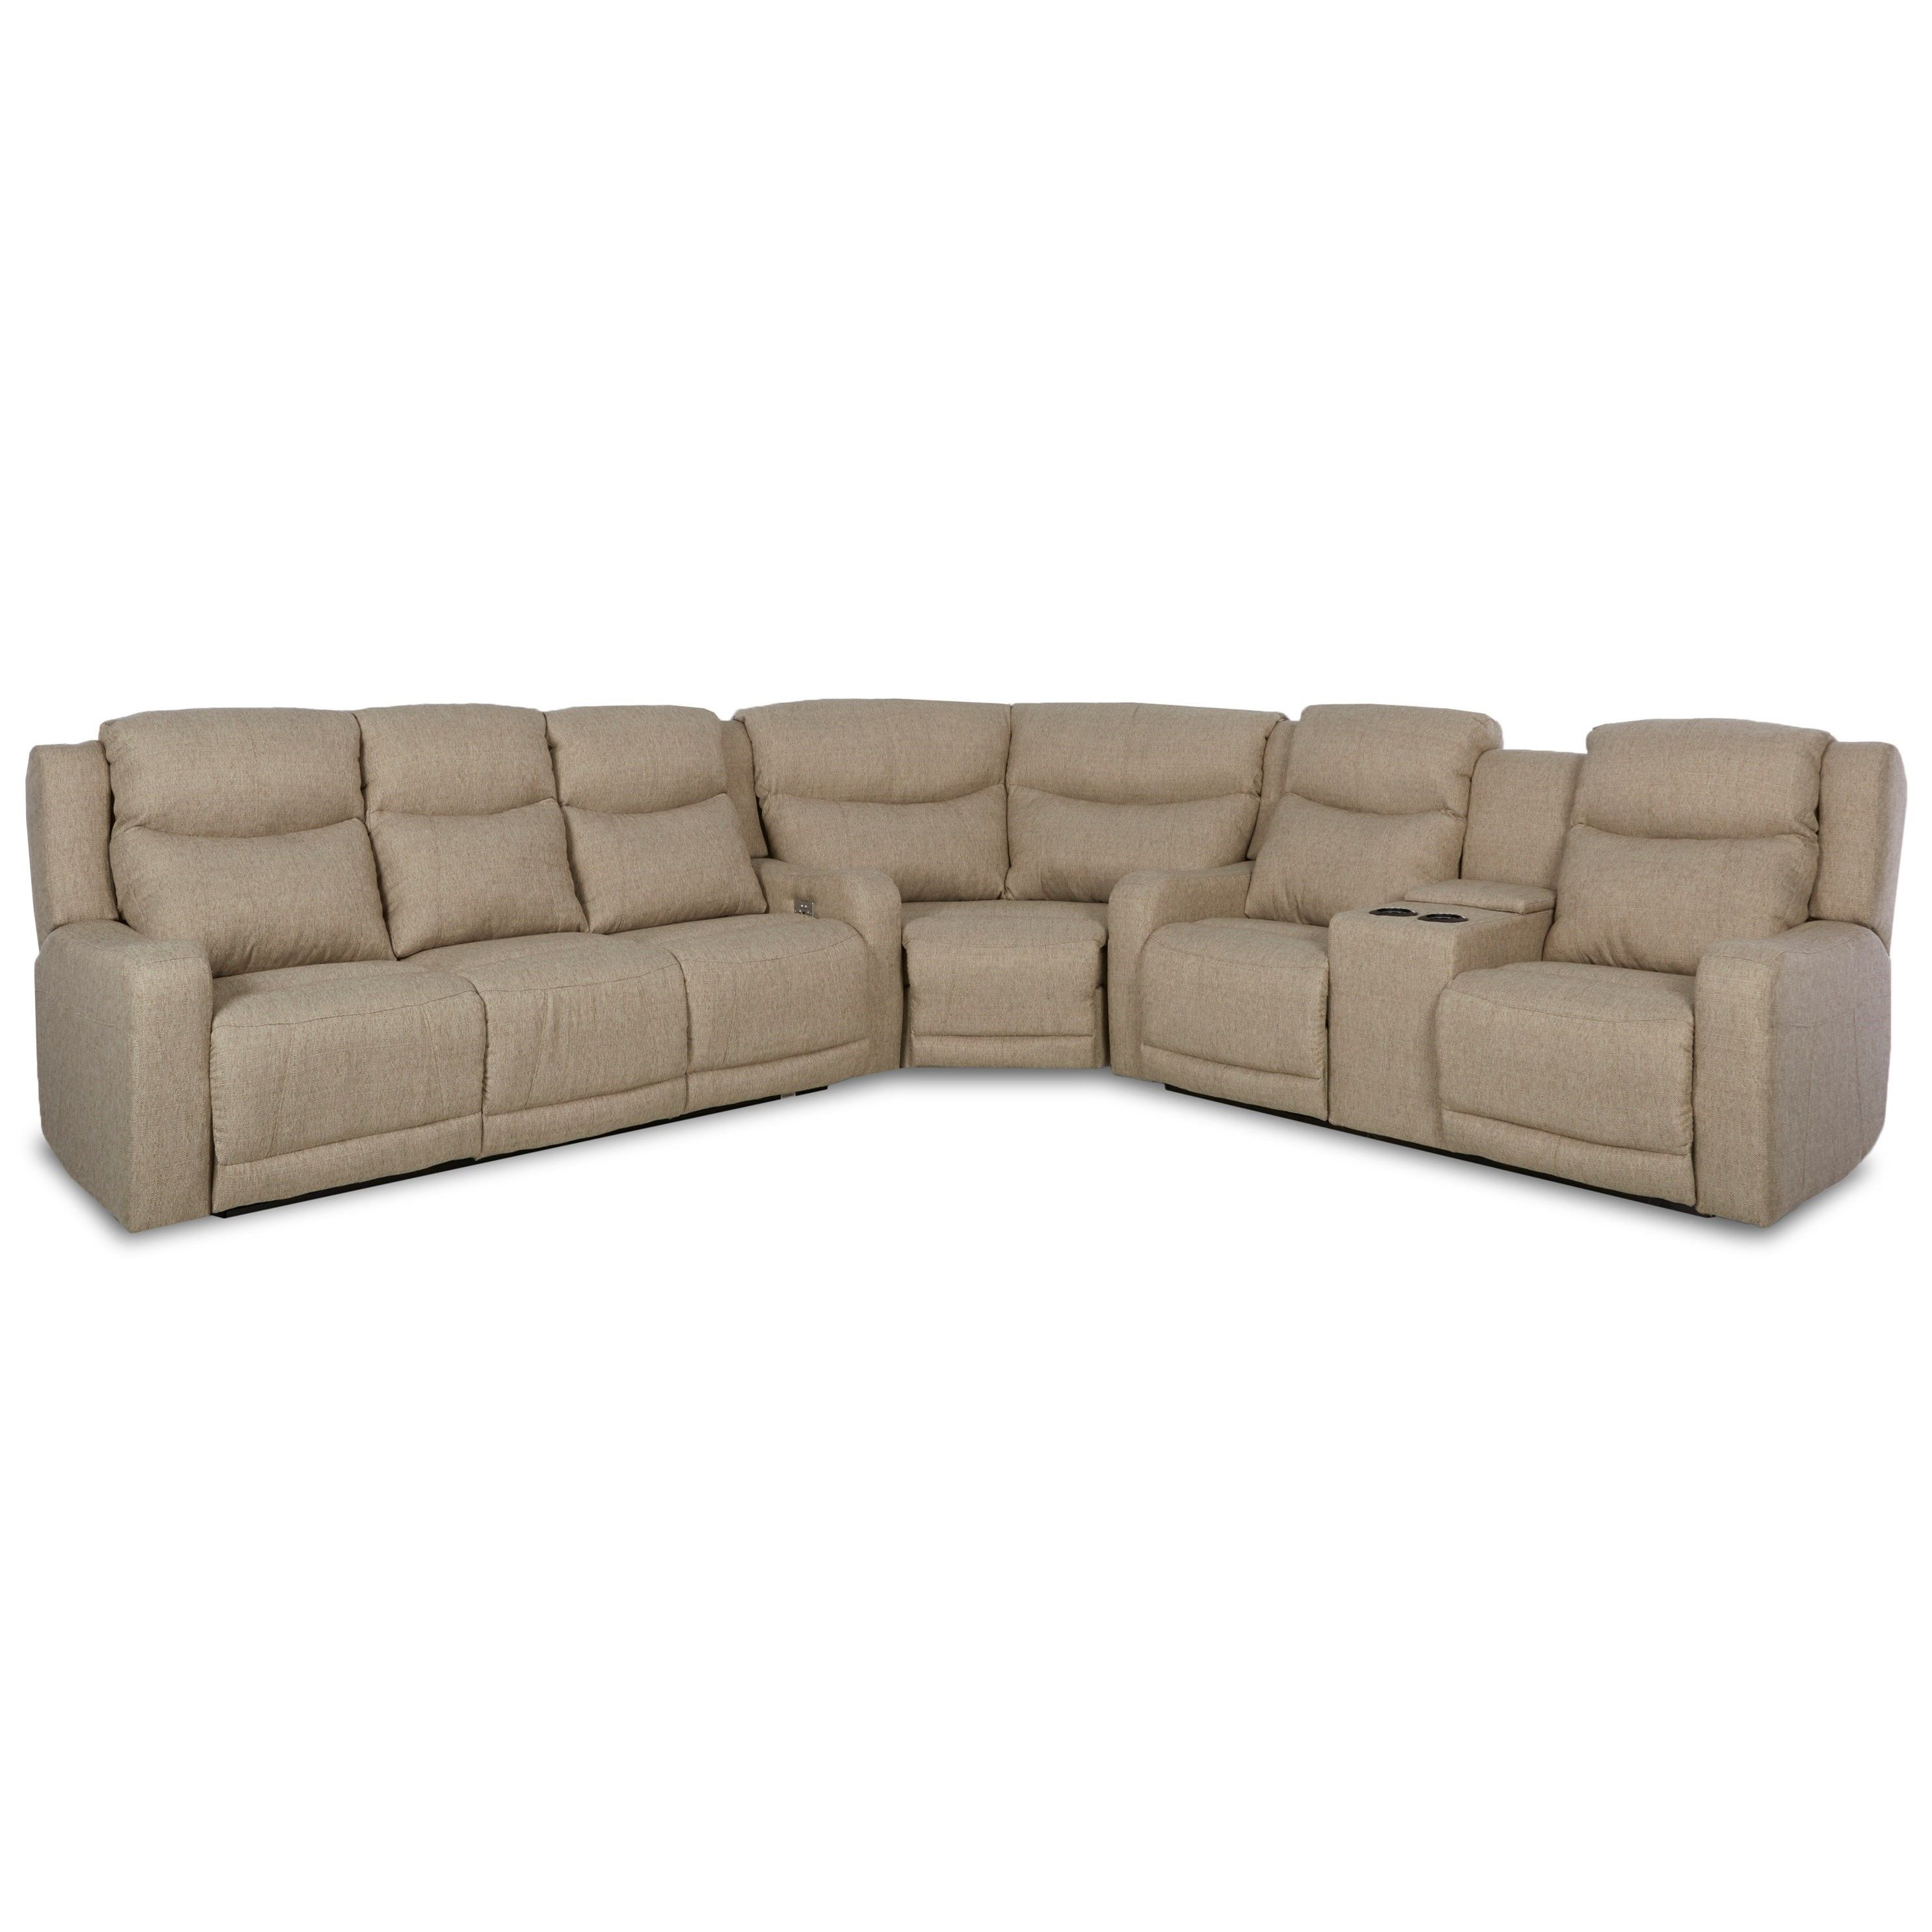 barnett 3 pc reclining sectional sofa by klaussner at dunk